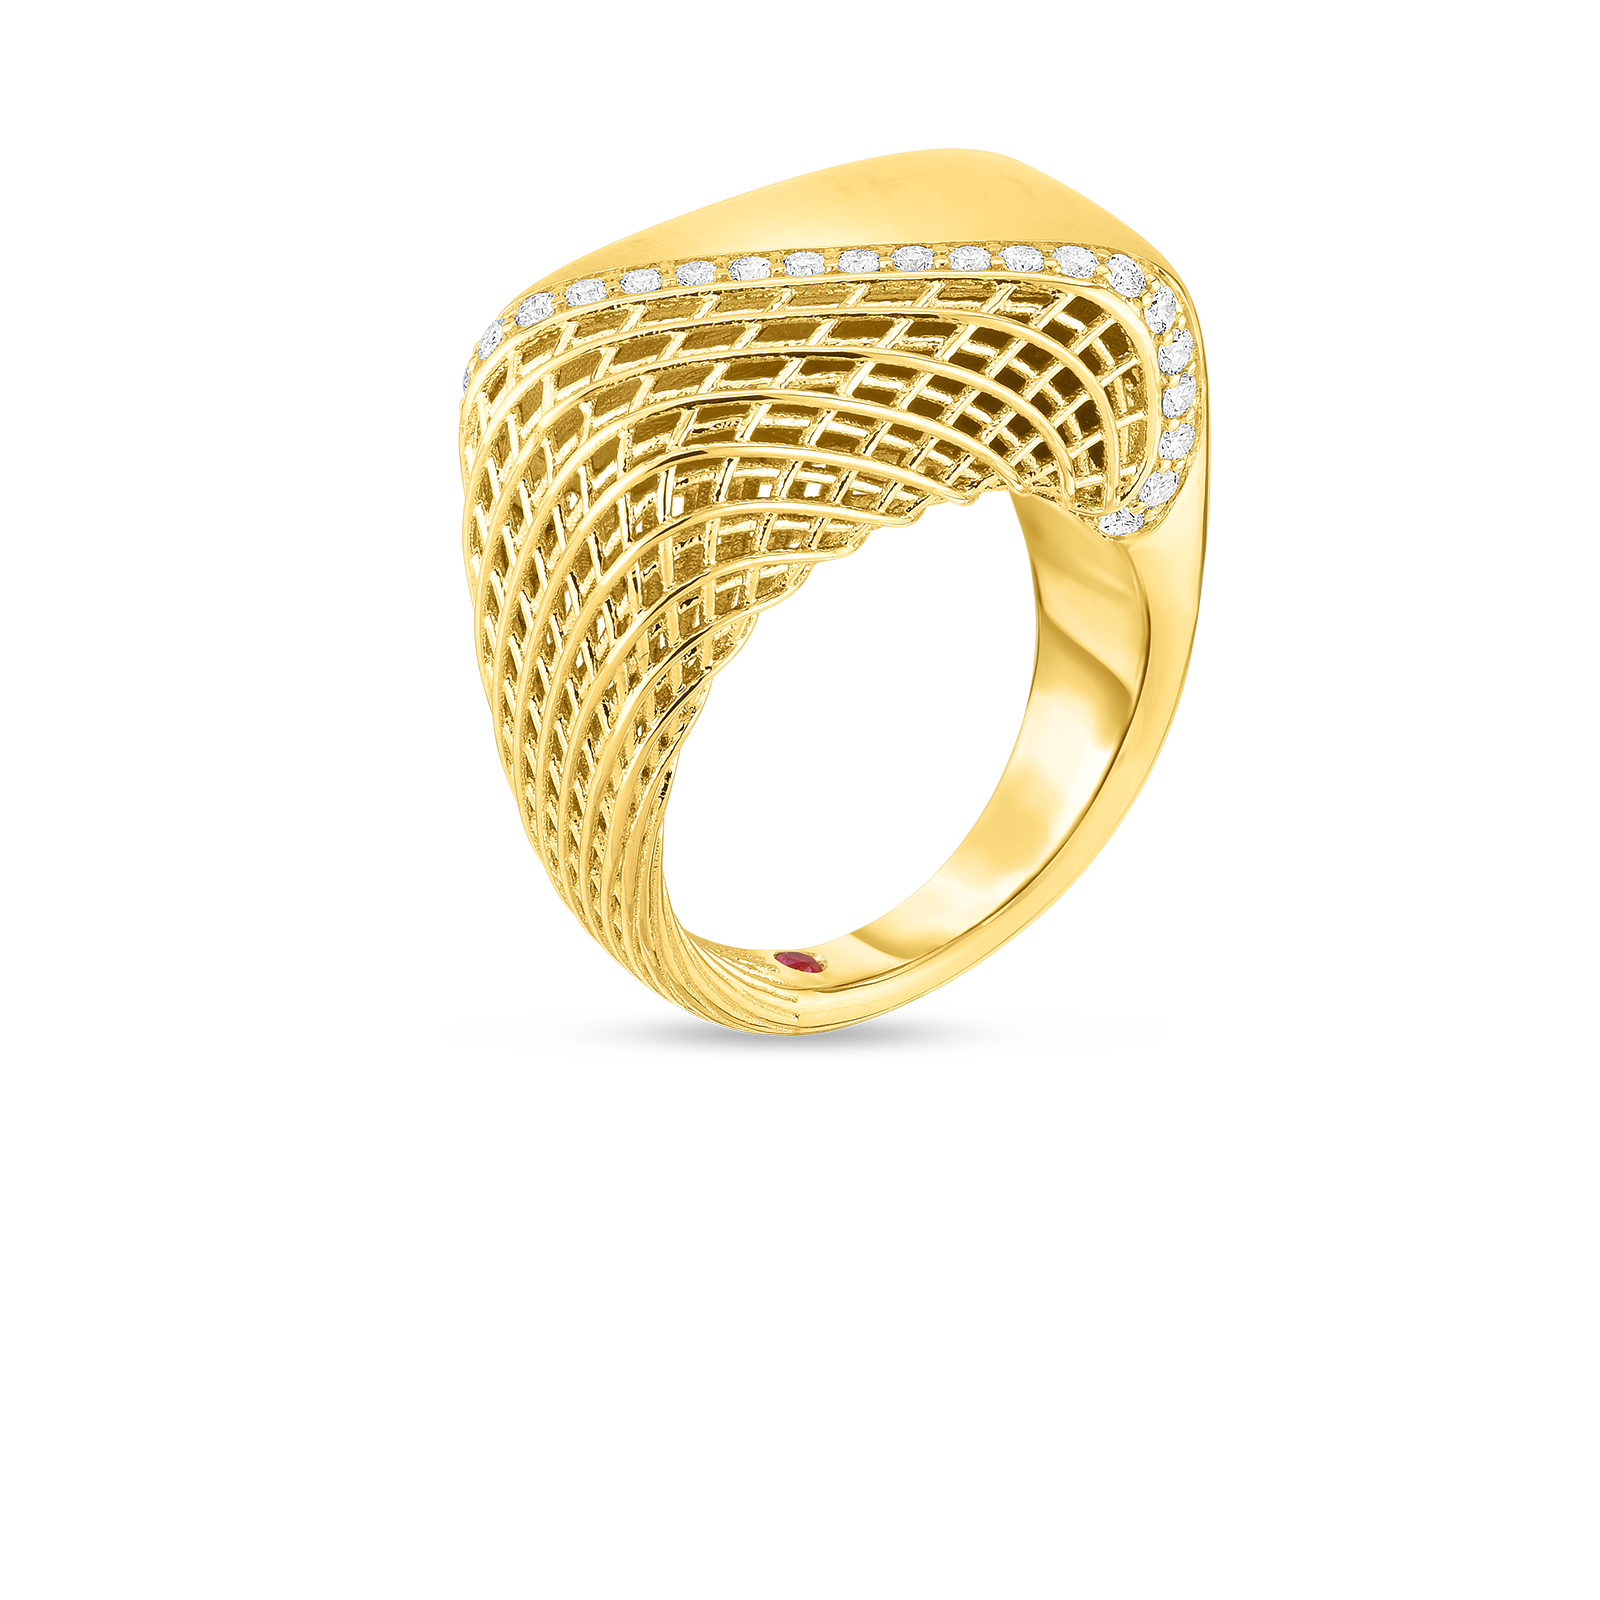 18kt gold ring with diamonds